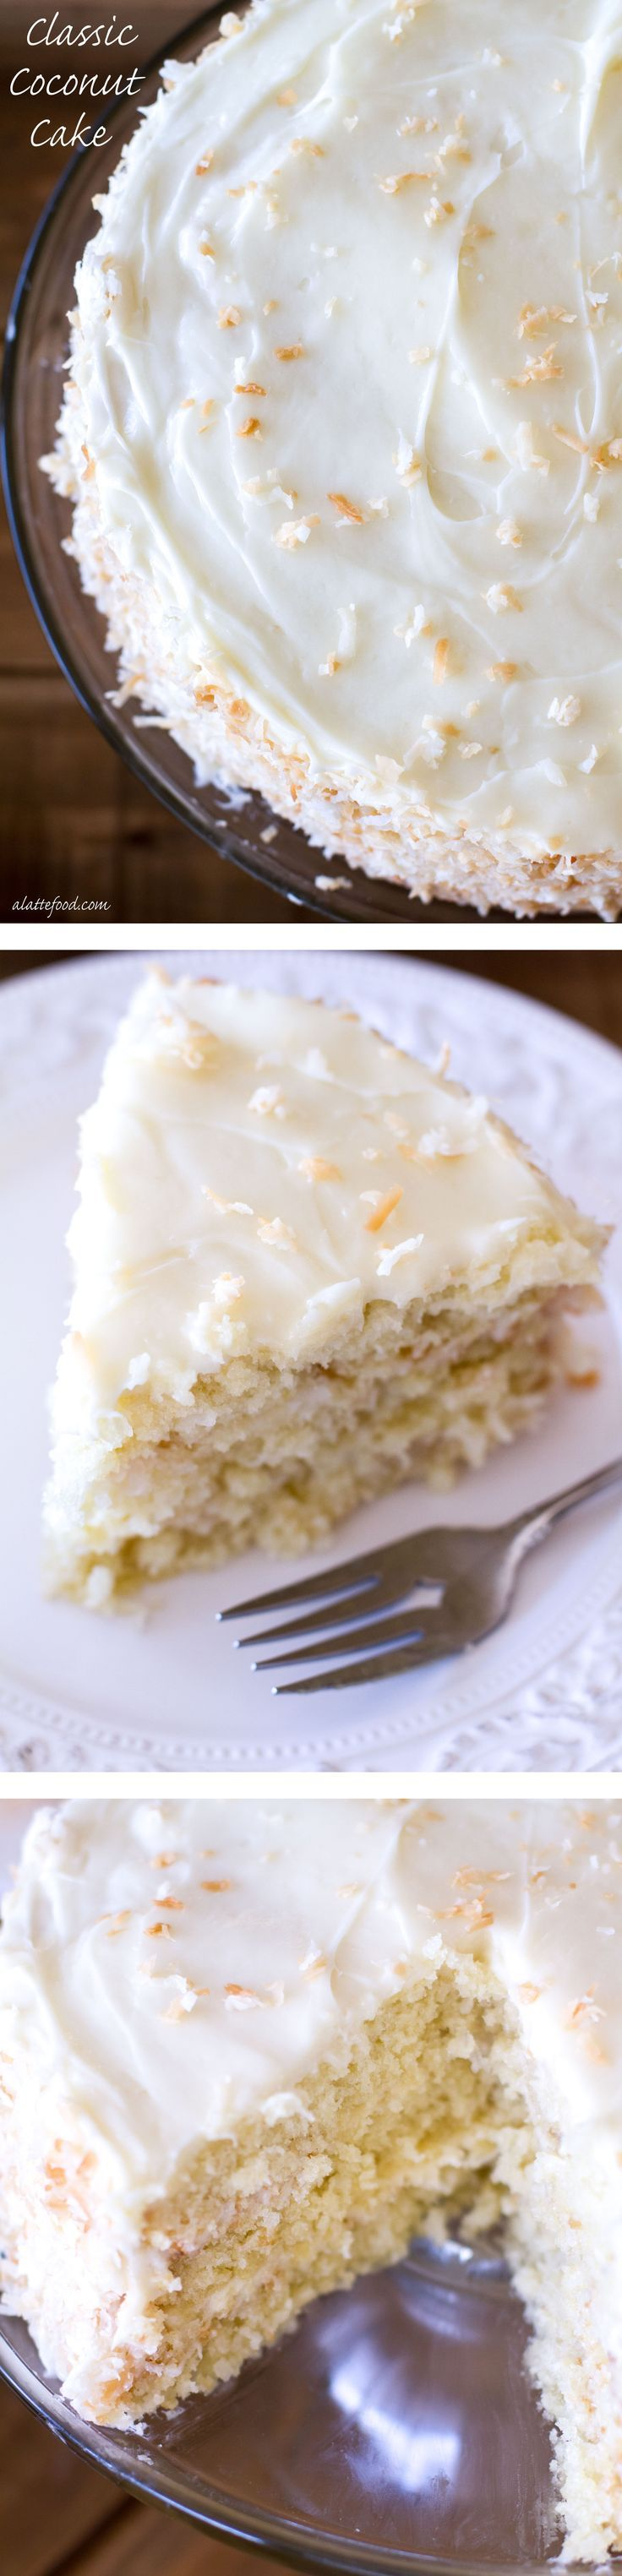 This triple layer cake is filled with delicious coconut flavor and topped with a to-die for cream cheese frosting! This cake is simple yet a total crowd pleaser!